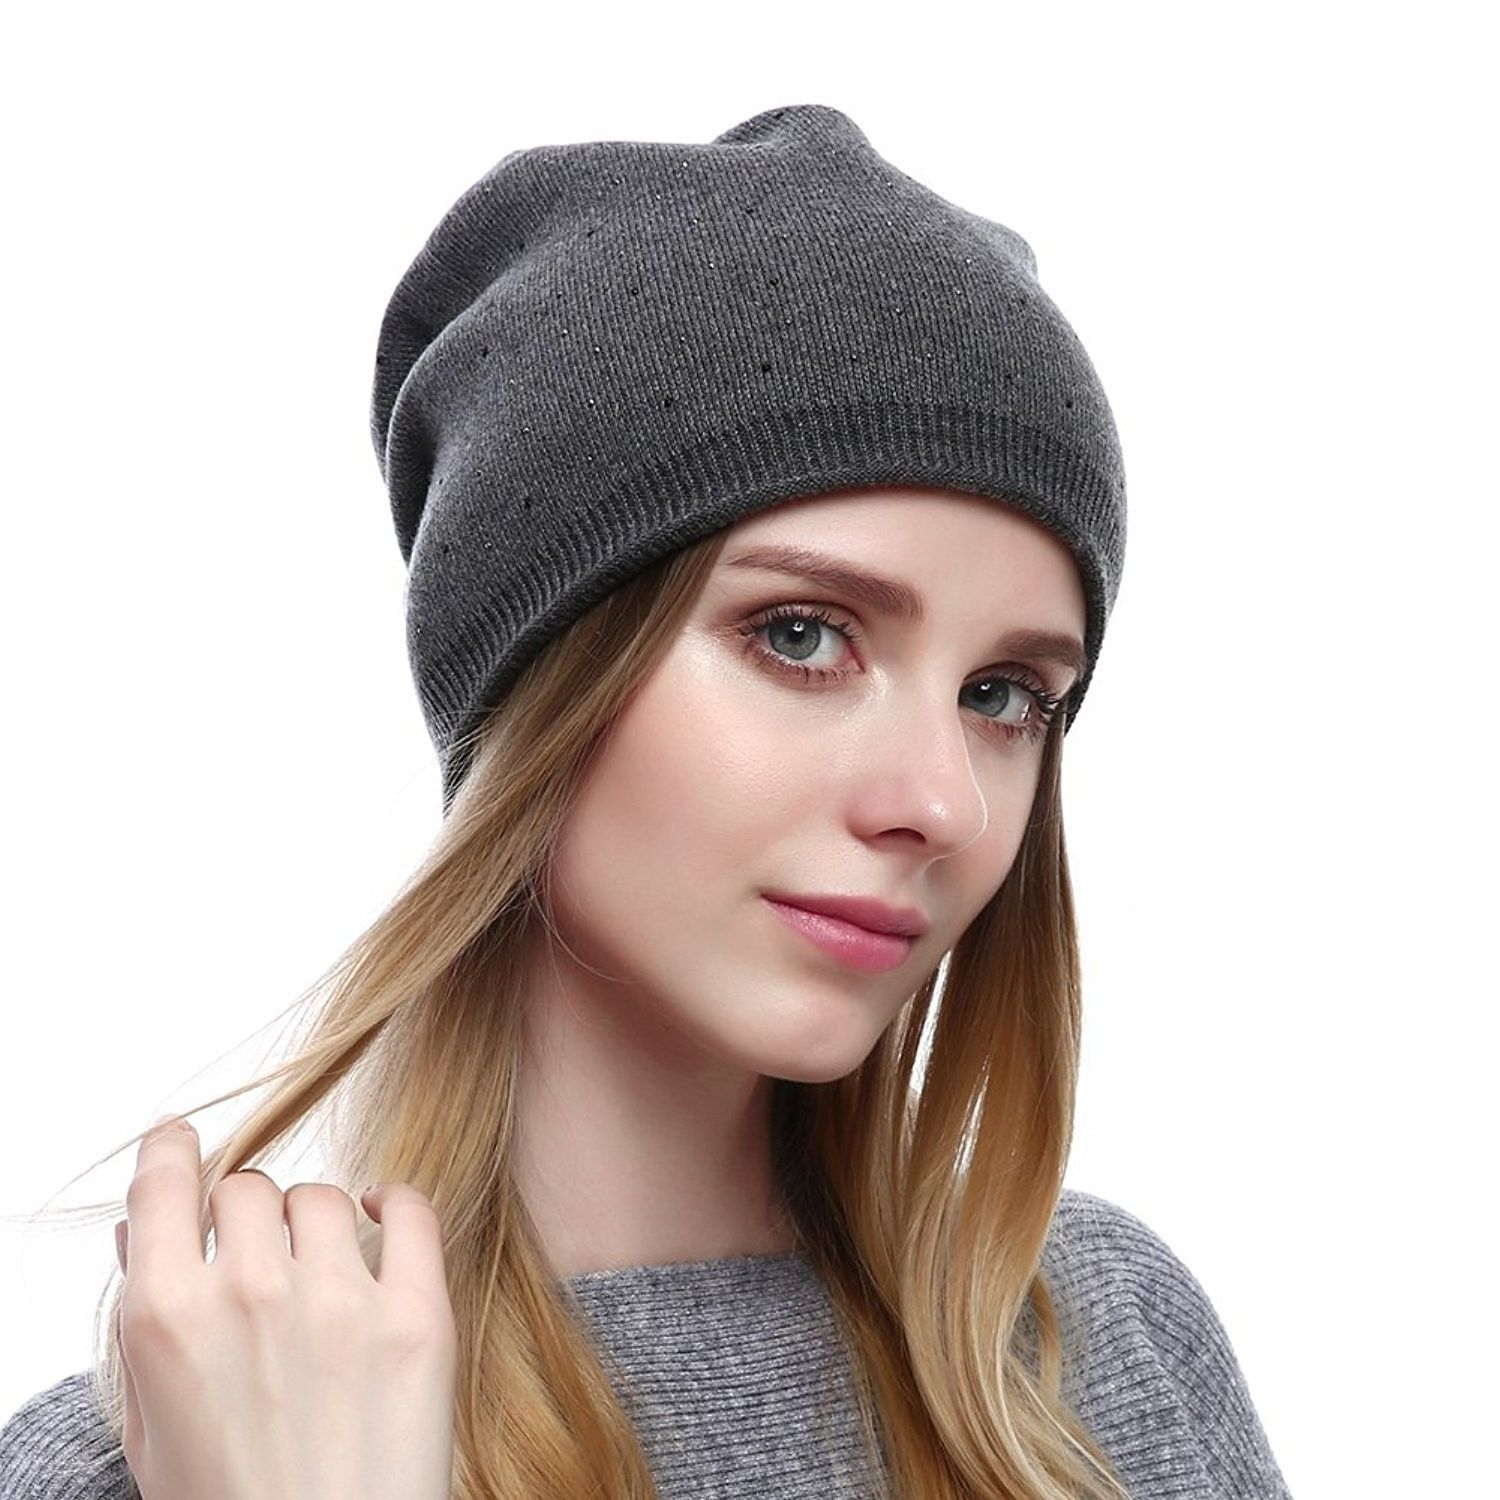 af2bc158b10 Women s Wool Knit Beanie Hats With Rhinestone - Grey - CP186H55E2X - Hats    Caps